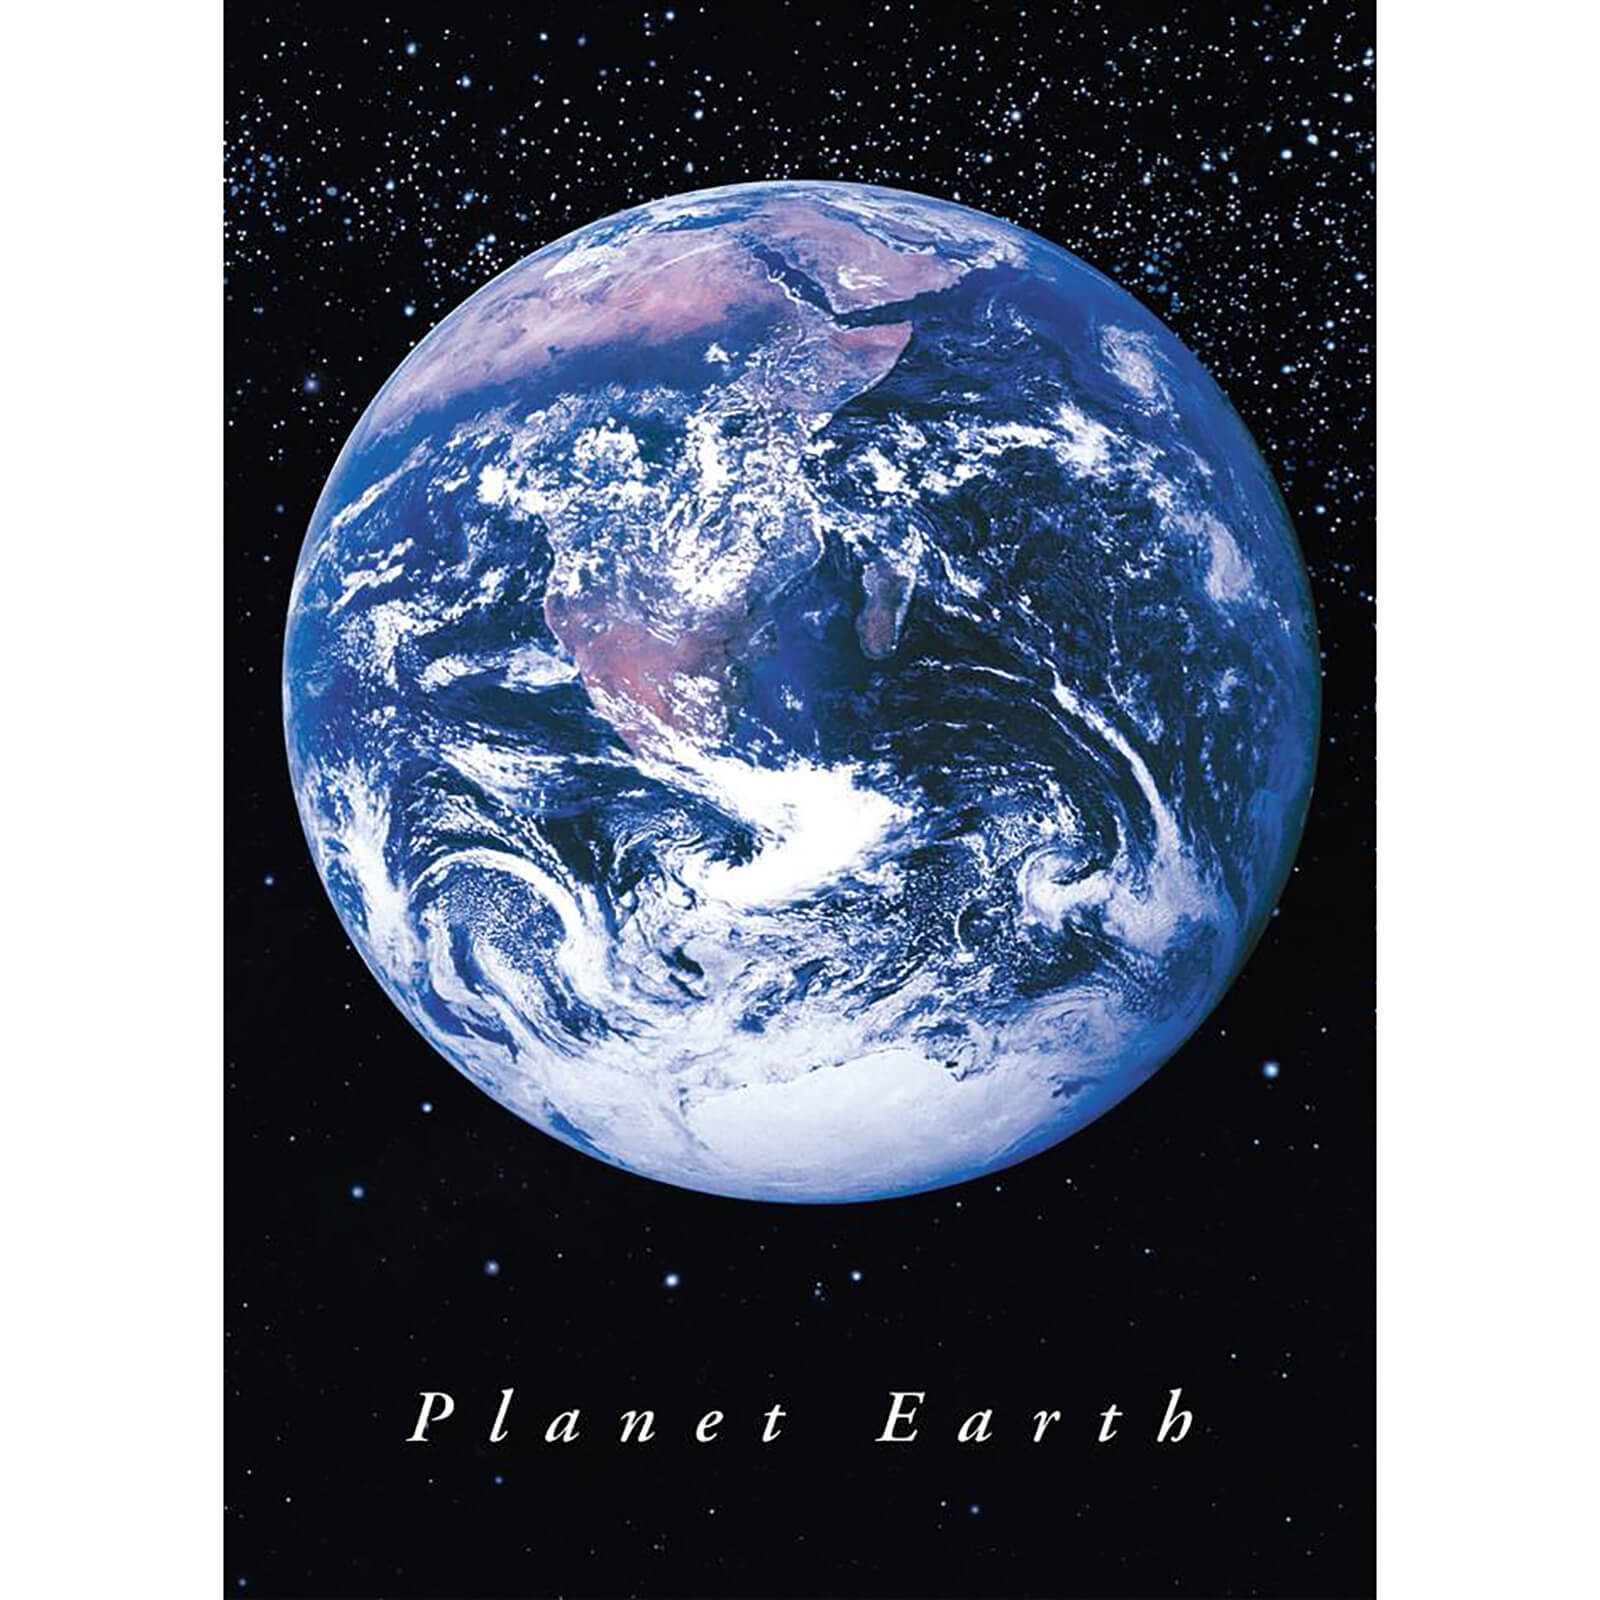 Planet Earth - 61 x 91.5cm Maxi Poster